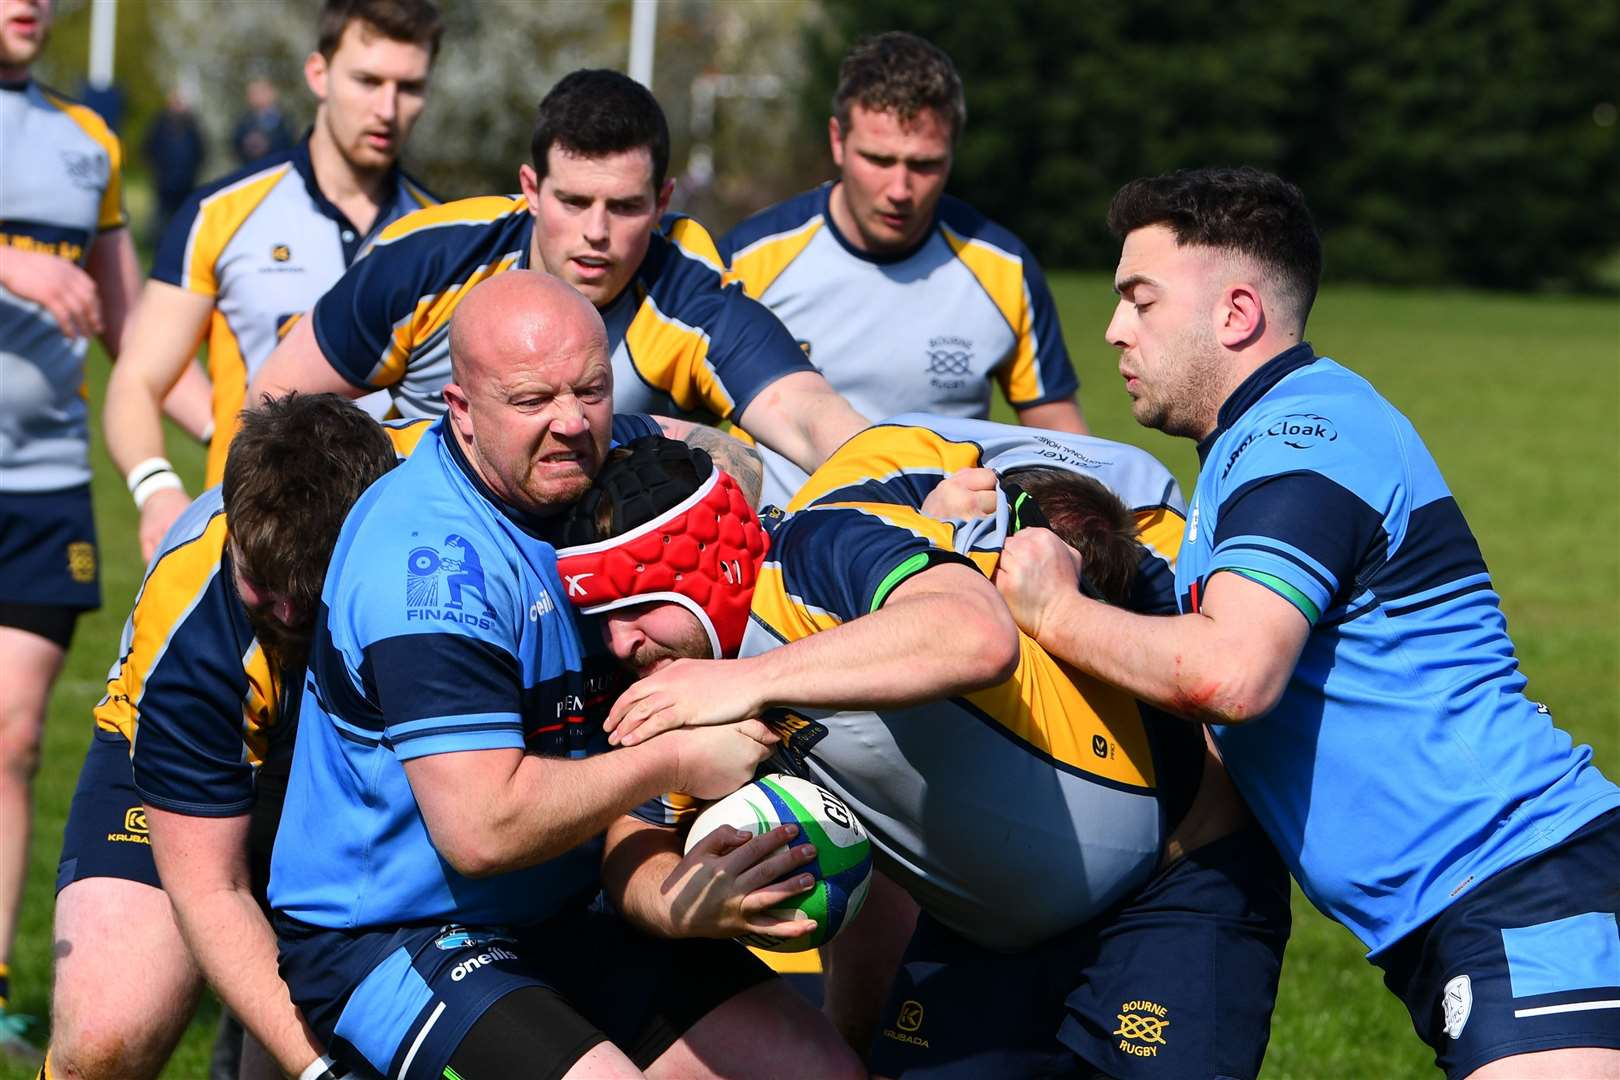 Bourne were 73-7 victors over St Neots on Saturday. Photo: Alan Hancock (8605658)